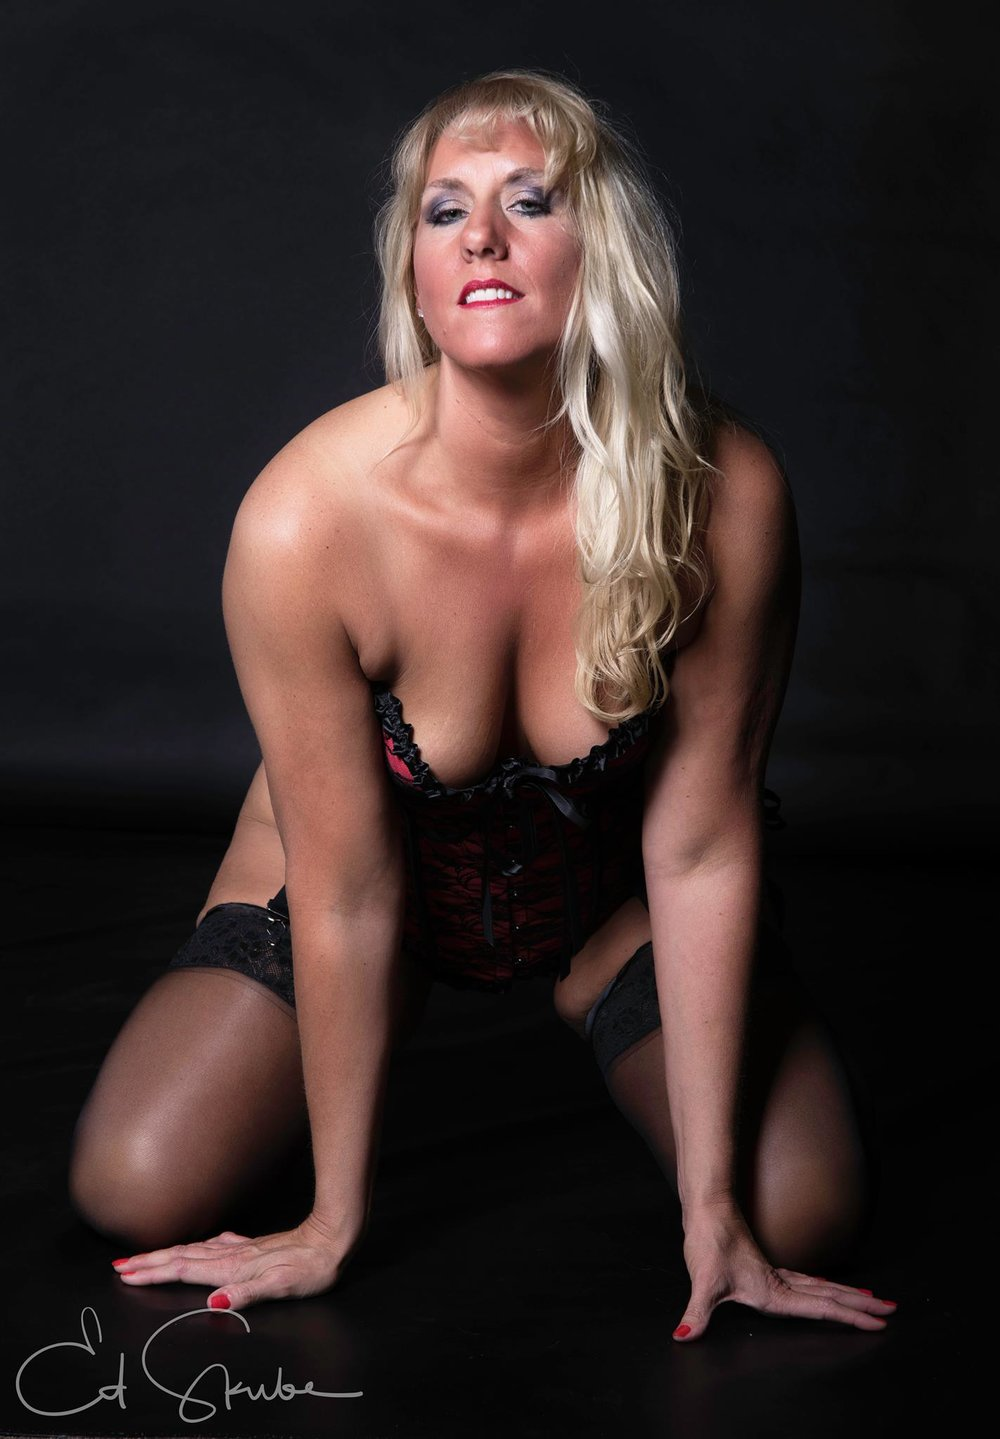 This sinfully, skilled, seductress will have your heart pounding the moment you see her. Her essence is sure to make even you feel a little evil inside.